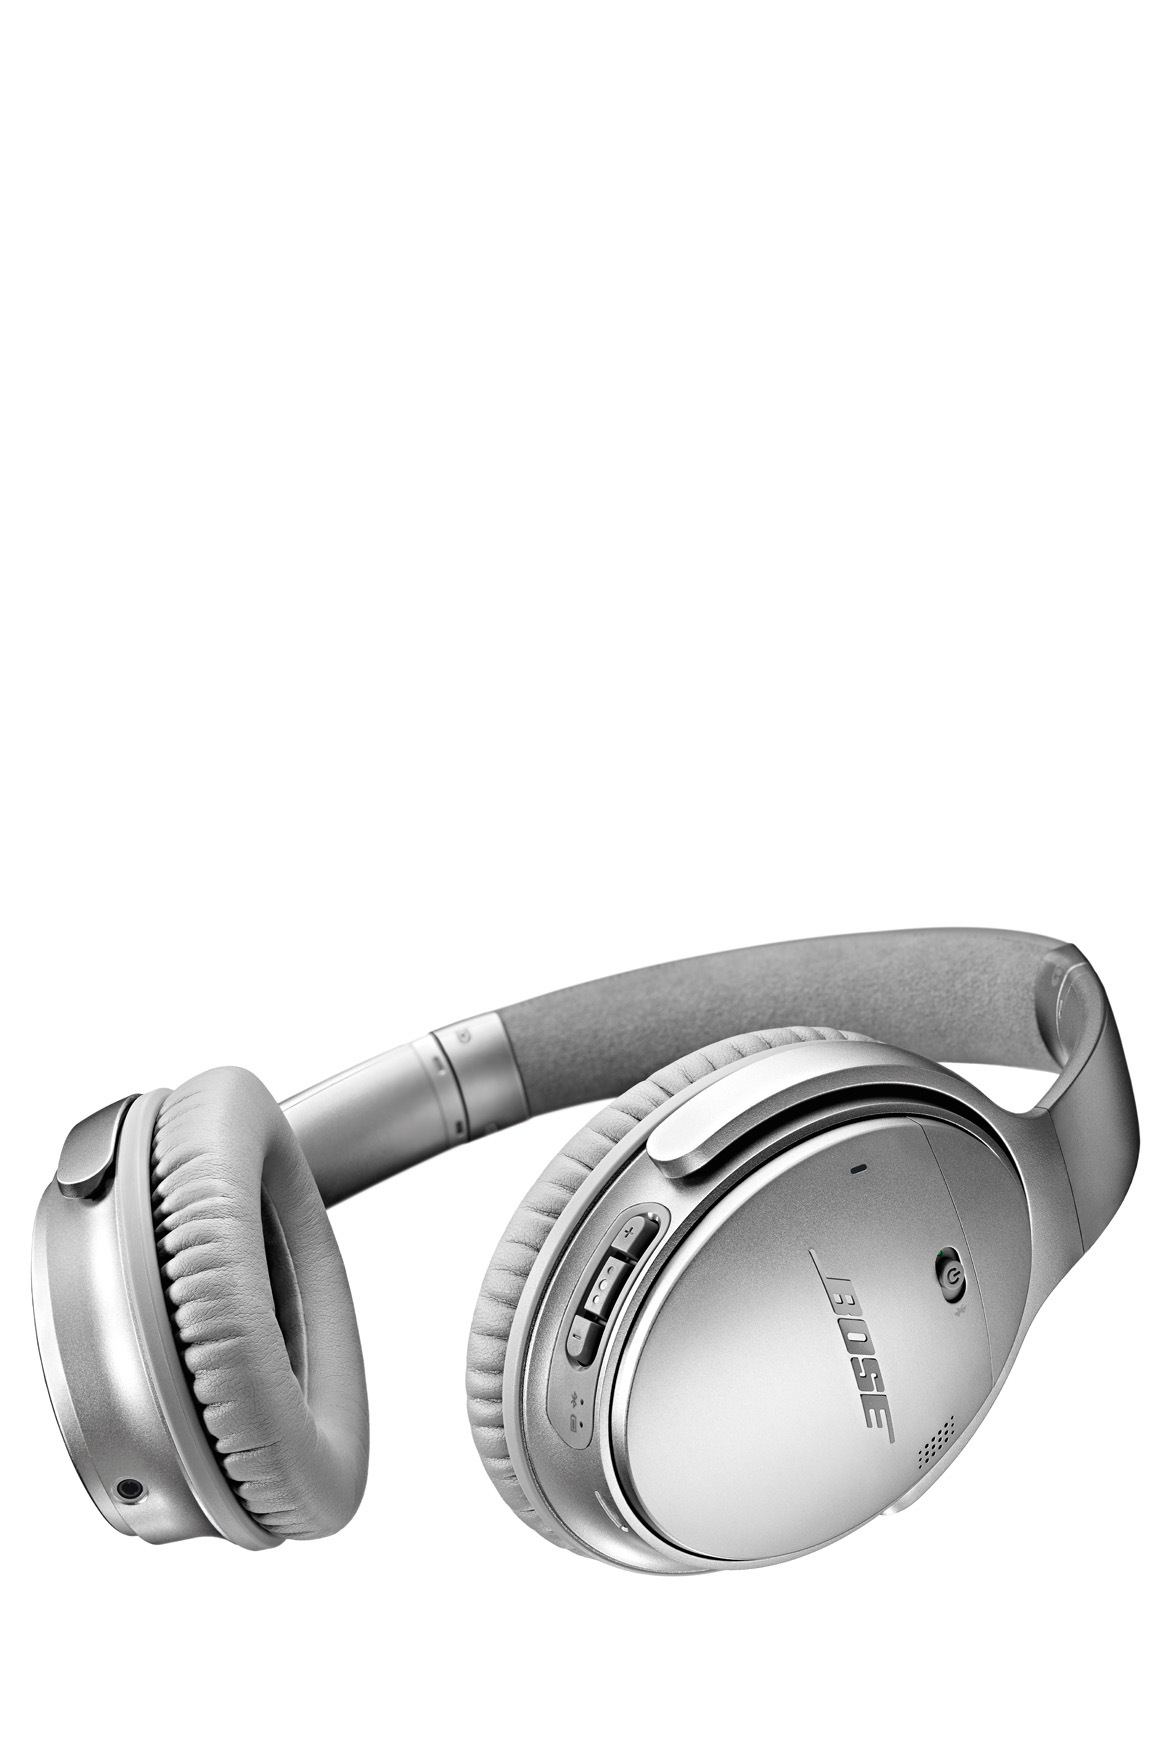 Bose wireless headphones for kids - headphones with microphone for kids